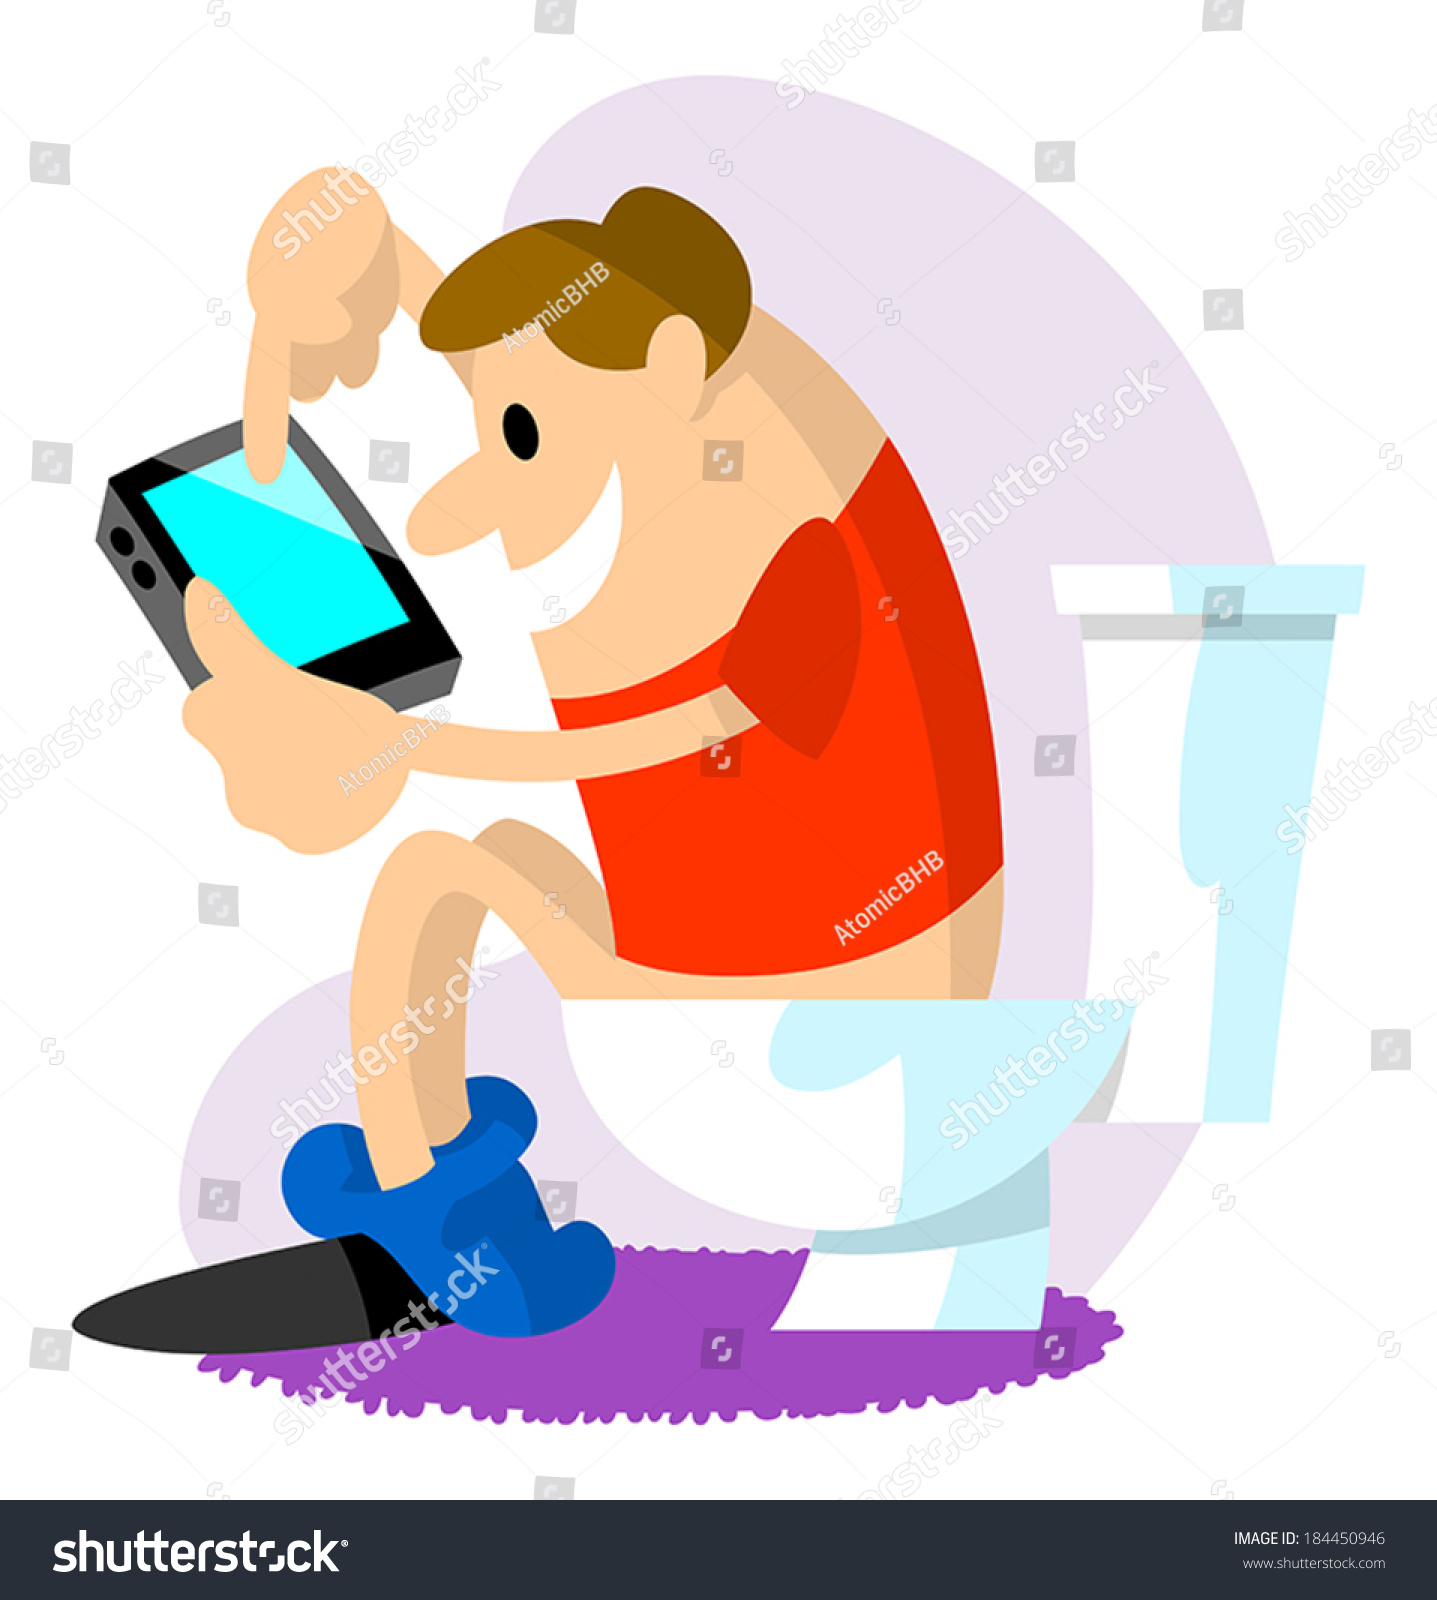 using the bathroom. Man using phone while the bathroom Using Phone While Bathroom Stock Vector 184450946